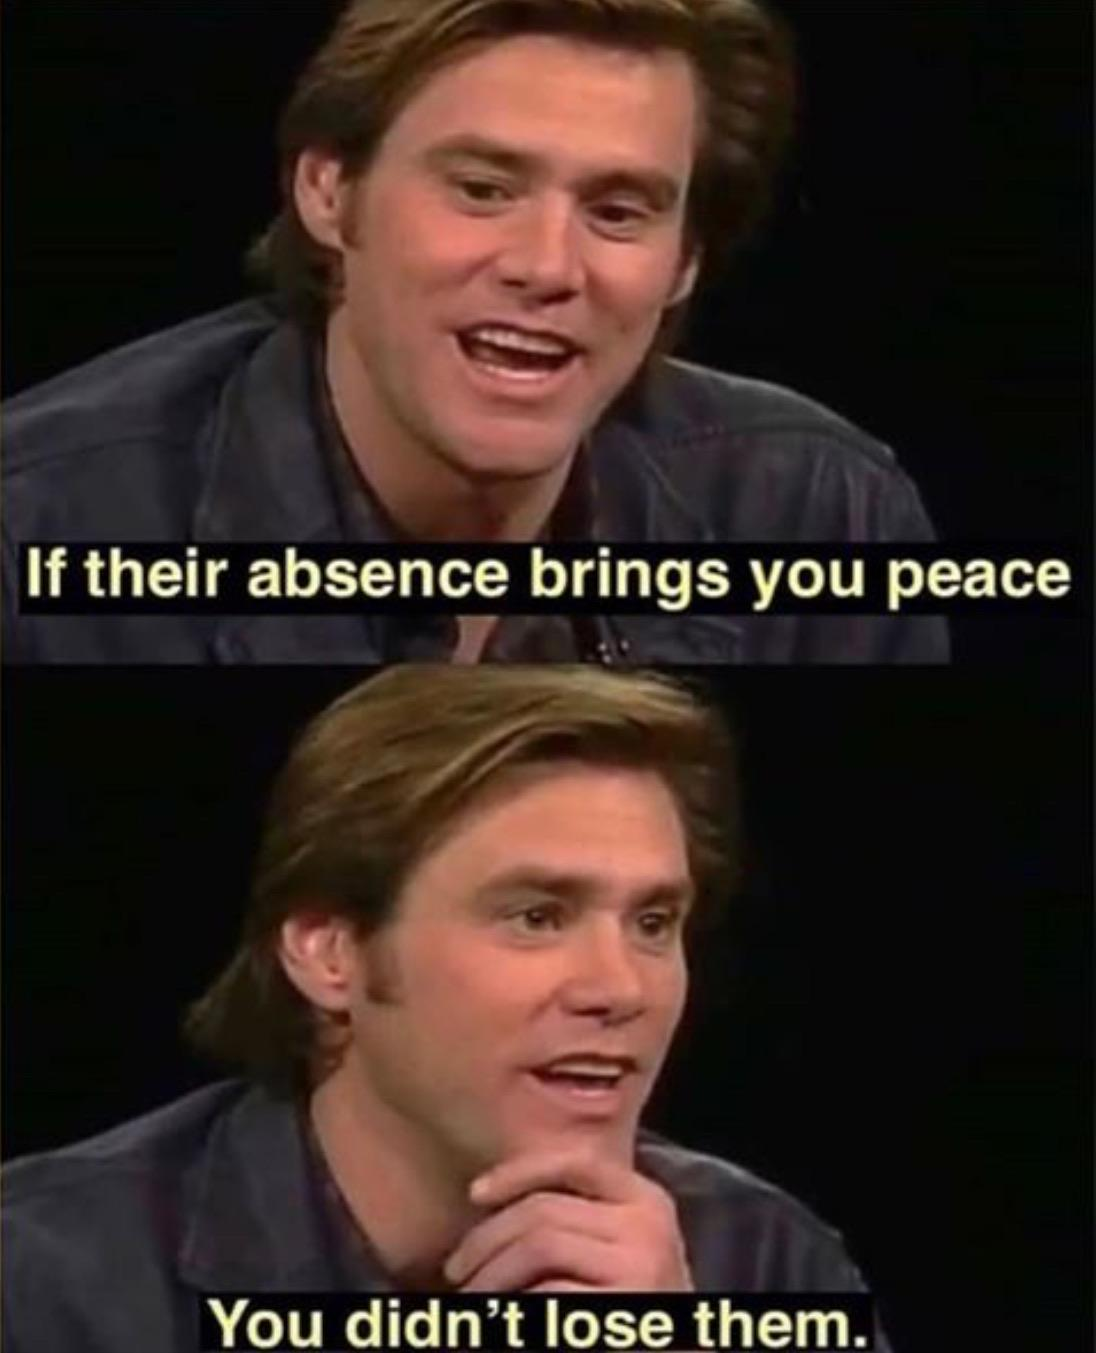 Wholesome memes, Jim Carrey Wholesome Memes Wholesome memes, Jim Carrey text: If their absence brings you peace You didn't lose theme